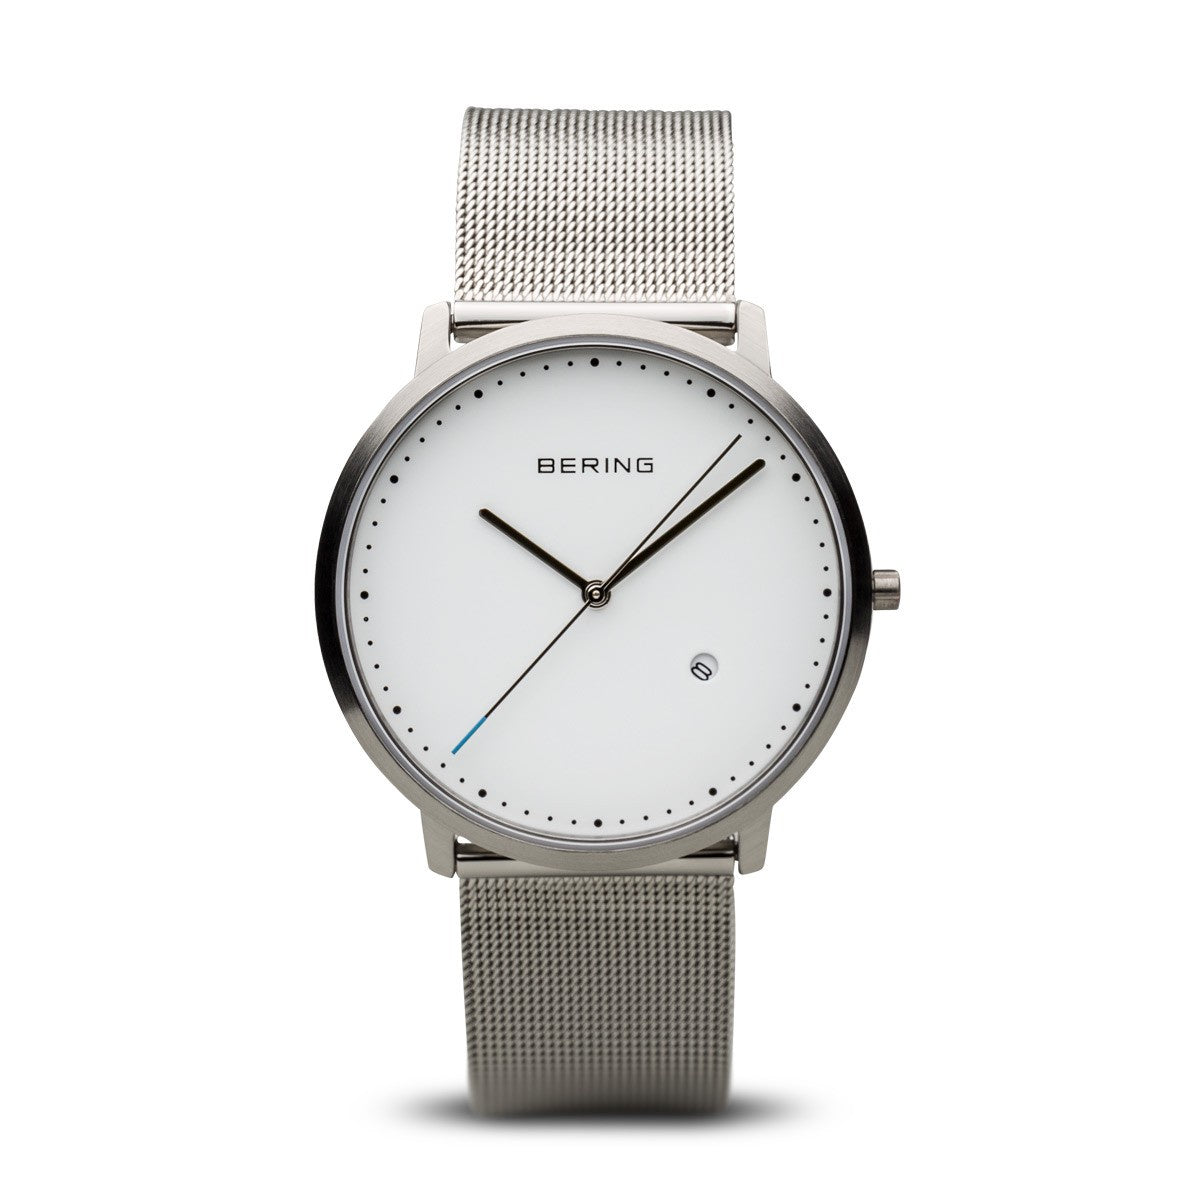 Bering Unisex Classic Brushed Silver Watch 11139-004 - Robert Openshaw Fine Jewellery